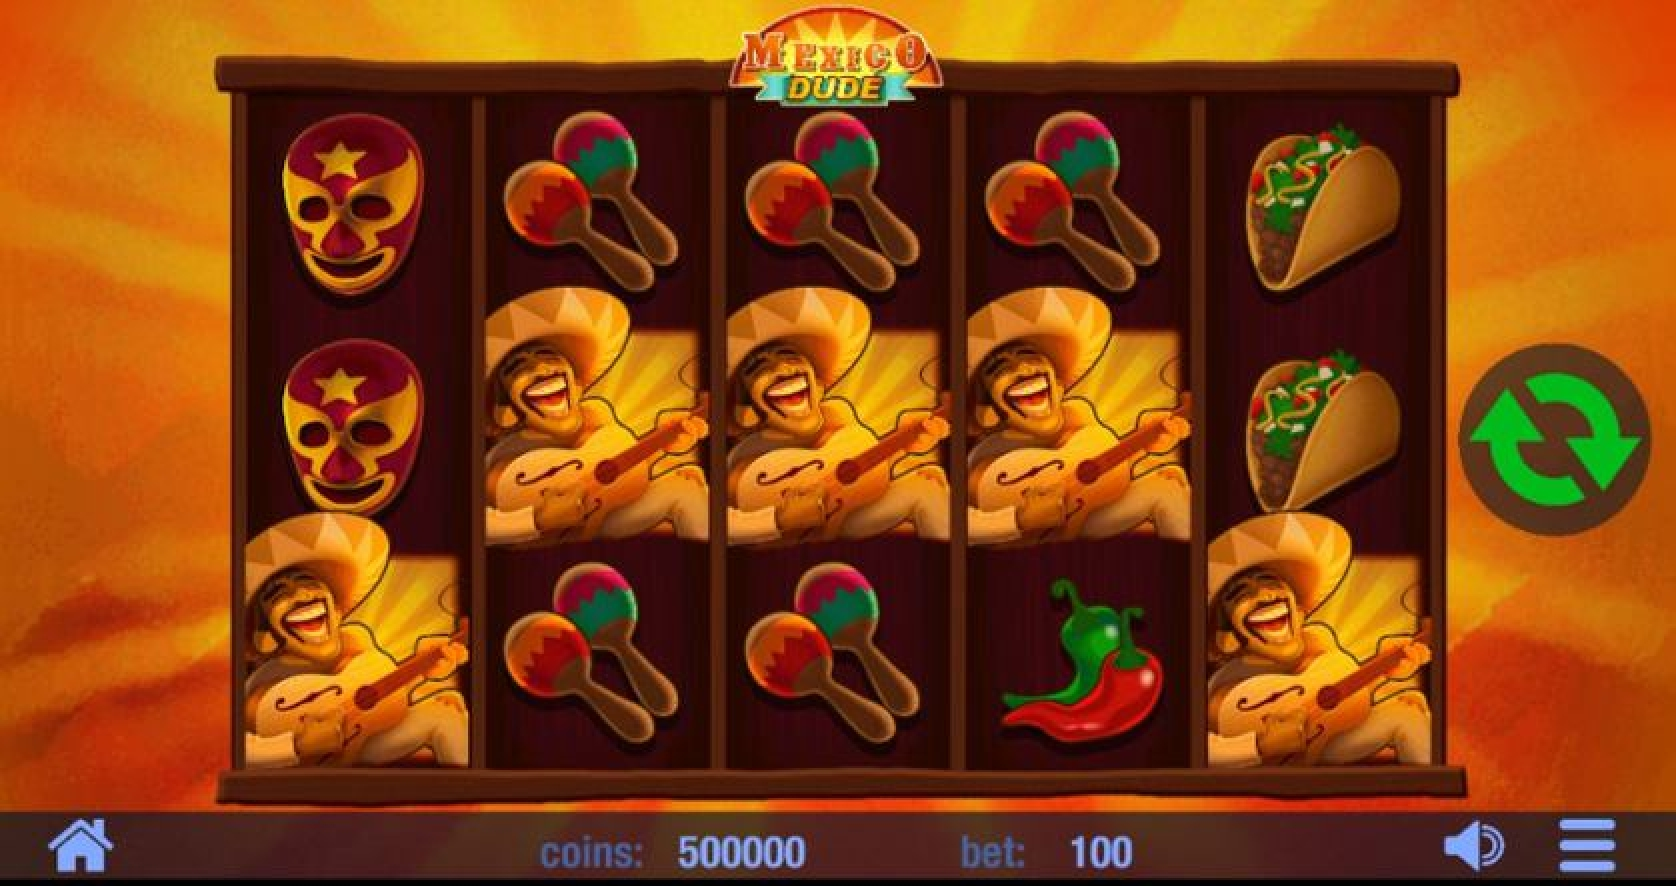 Win Money in Mexico Dude Free Slot Game by Swintt